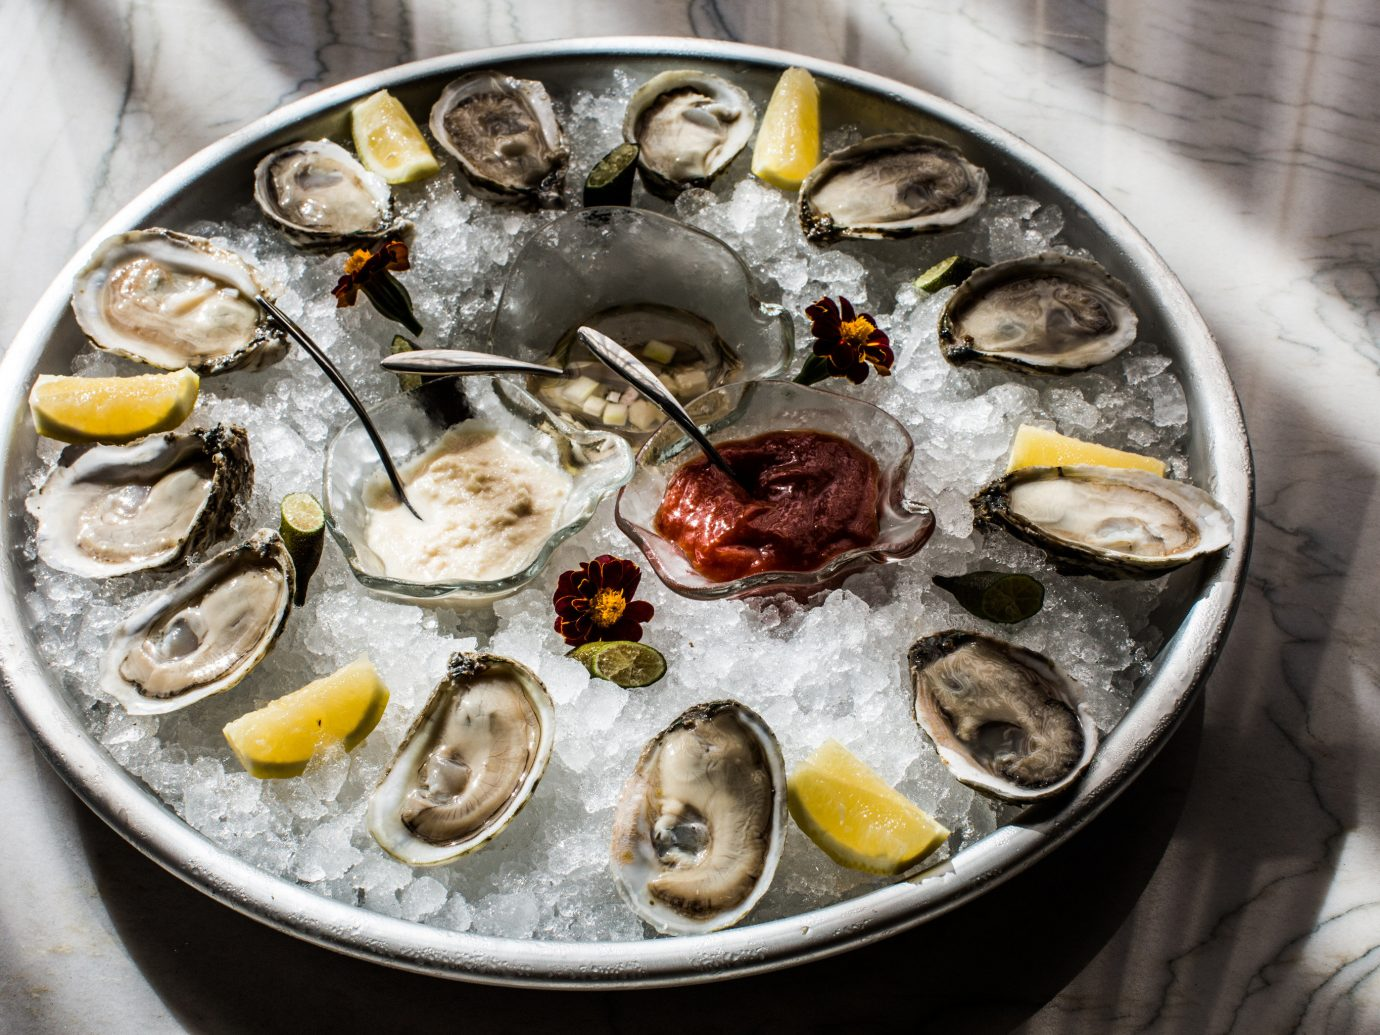 Food + Drink oyster Seafood food plate clams oysters mussels and scallops dish animal source foods clam recipe mussel